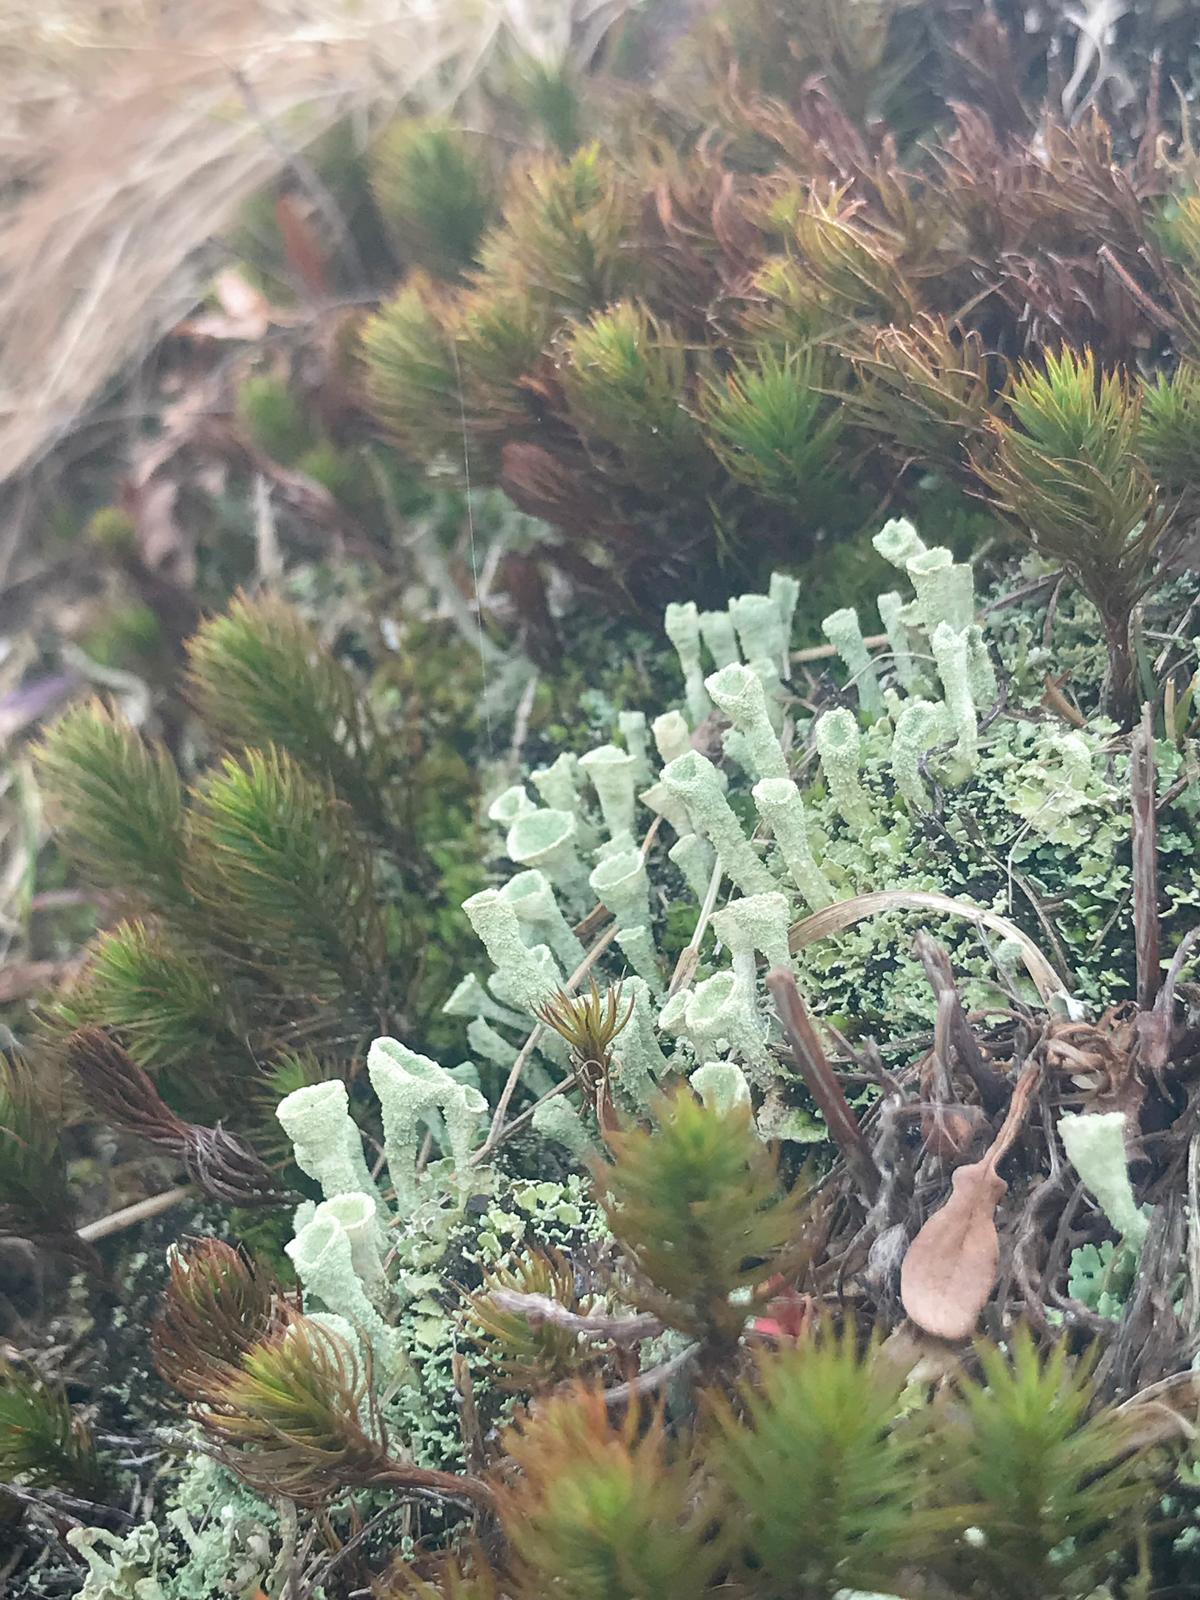 Magical Moss - Winter's Ending in New Hampshire - from The Magic Onions